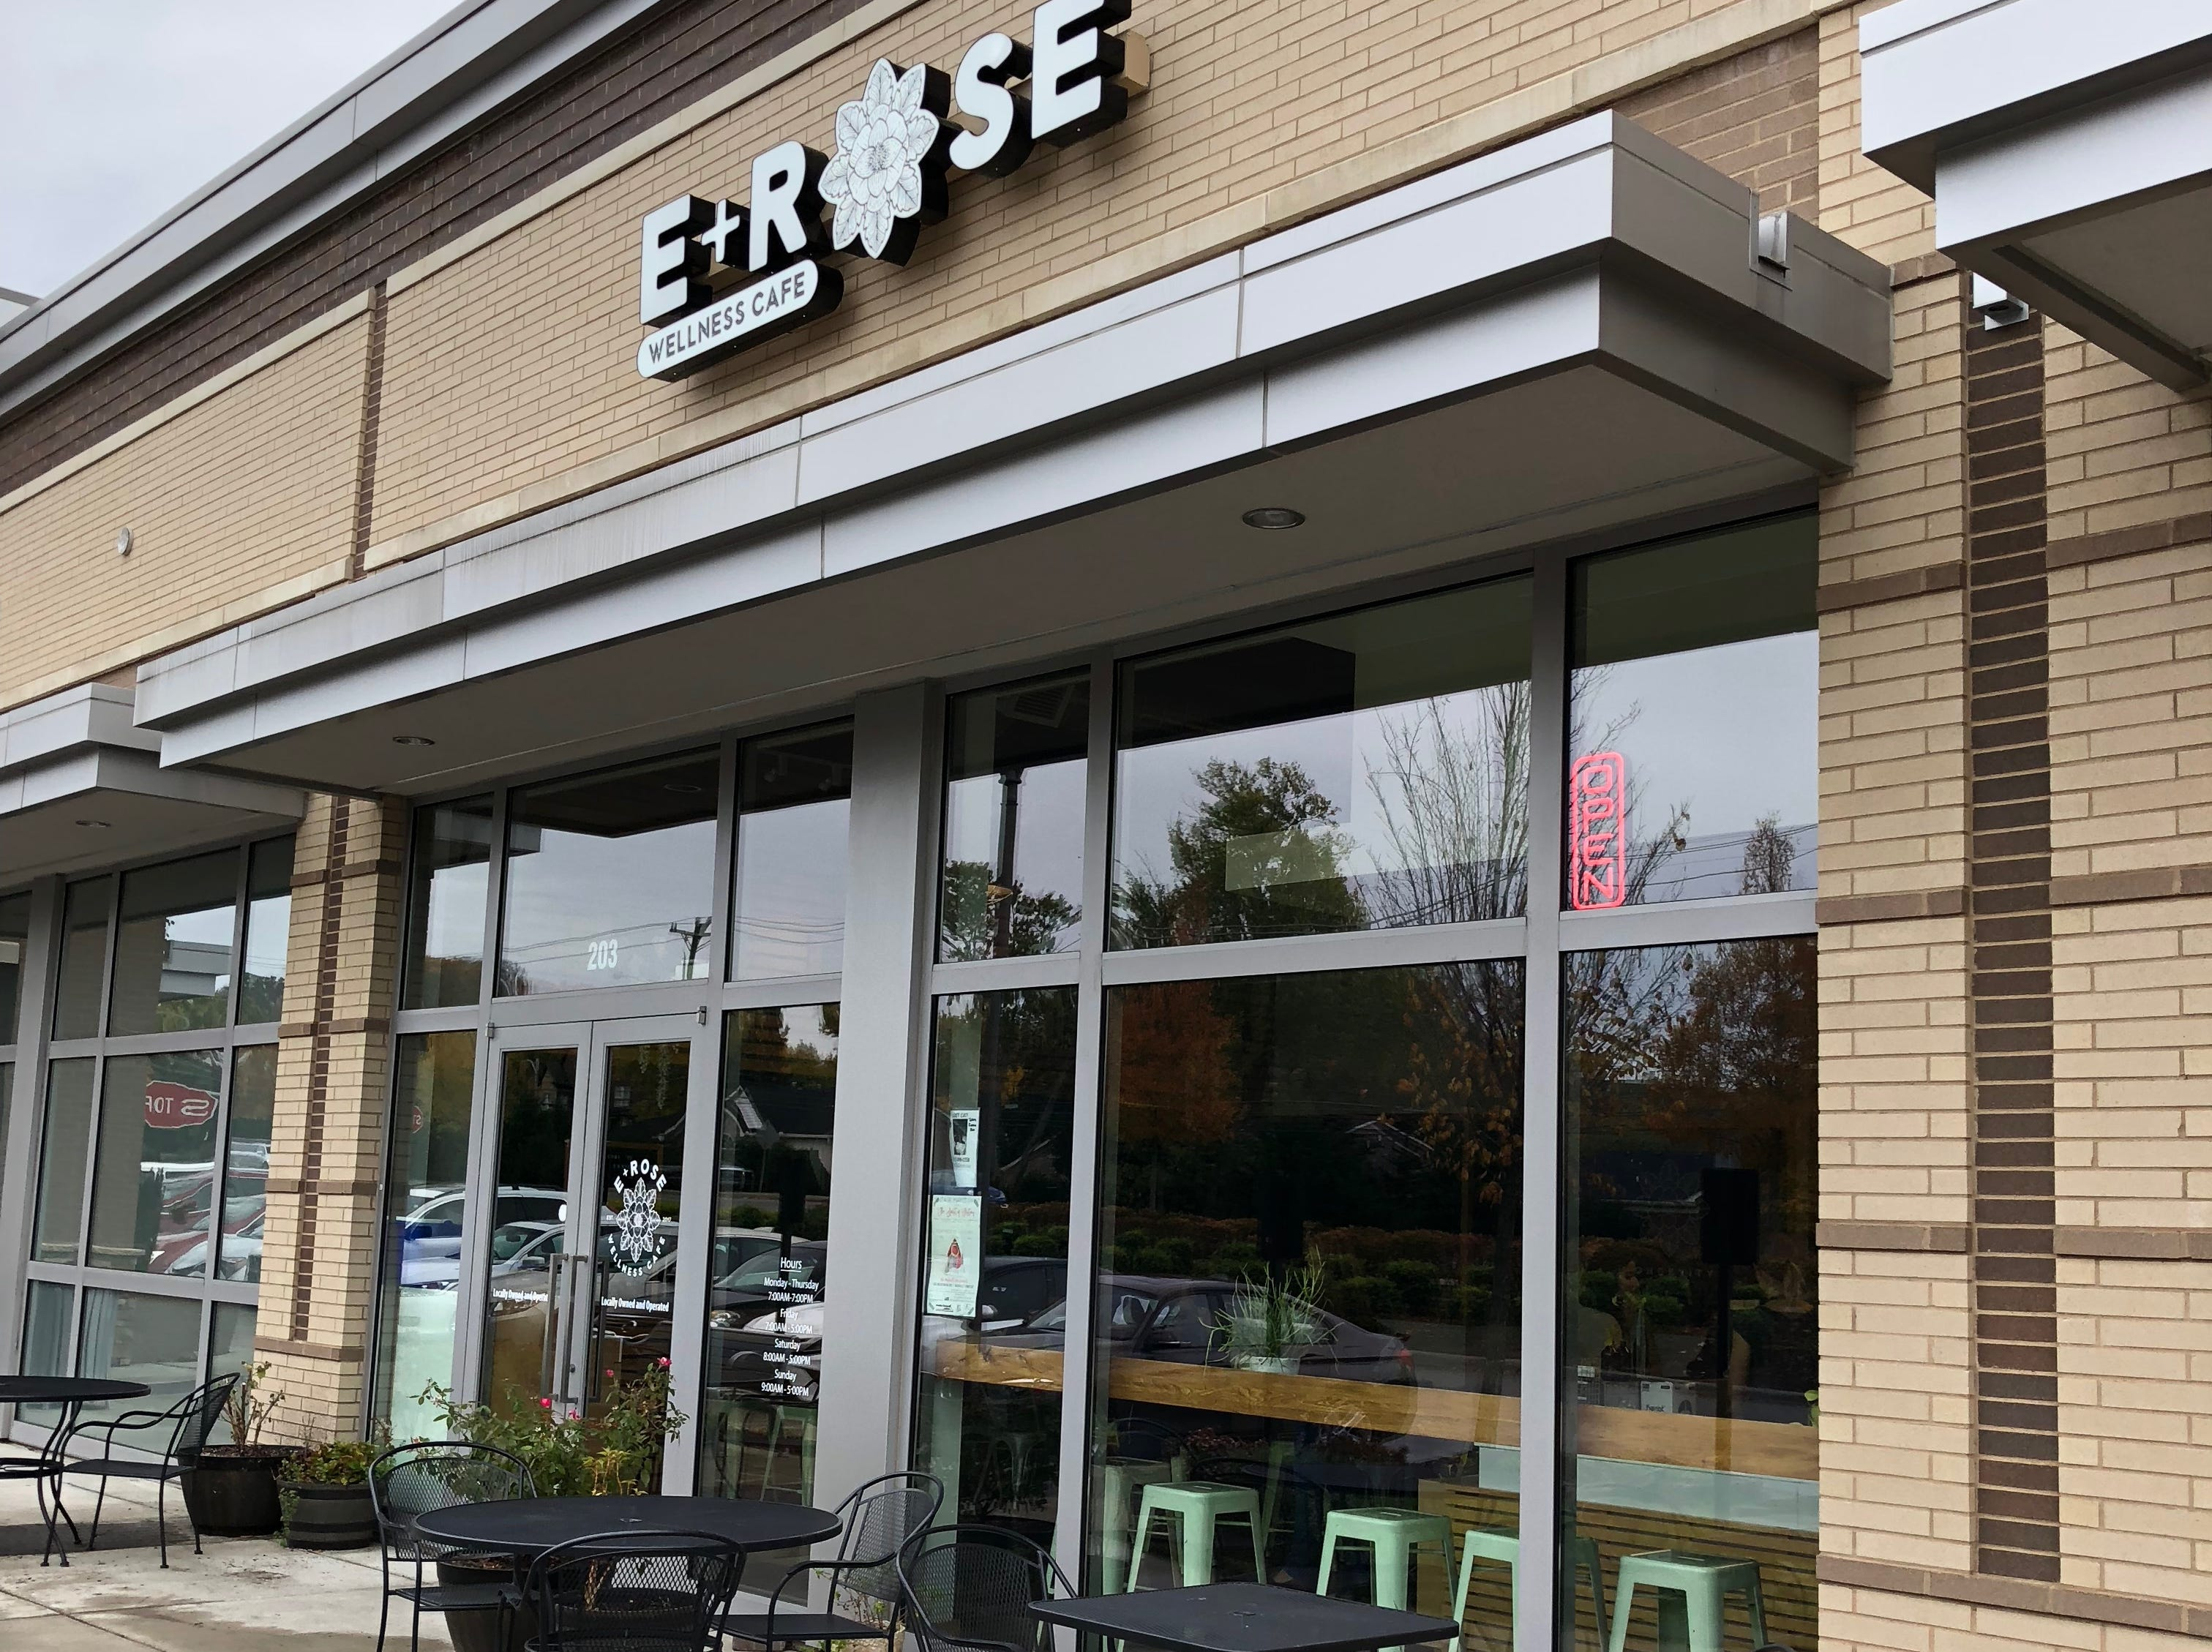 E + Rose has locations on Old Hickory Boulevard in Brentwood, shown here, and in Nashville at 211 Third Ave. S.